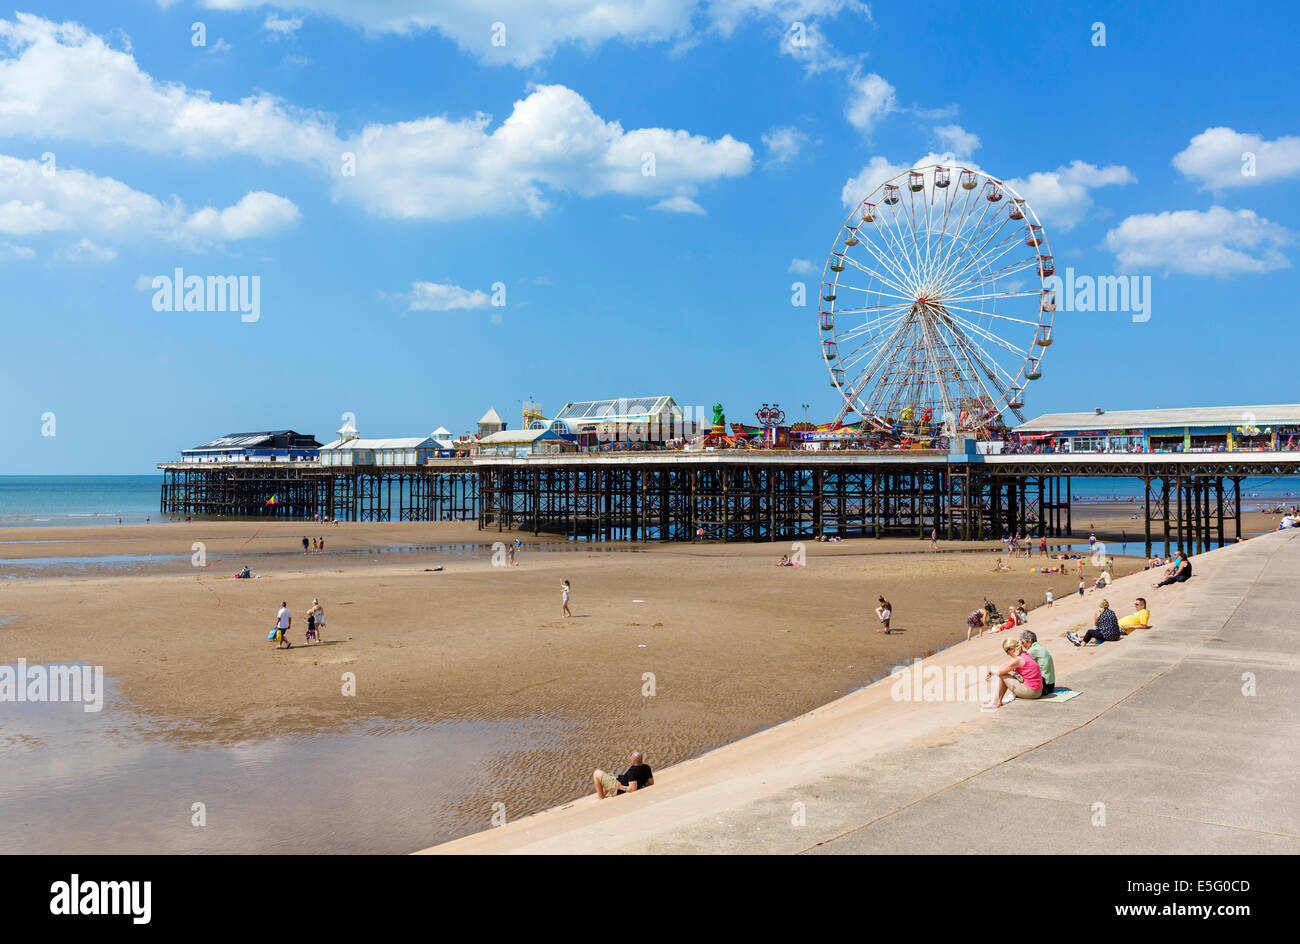 Central Pier, The Golden Mile, Blackpool, Lancashire, UK - Stock Image